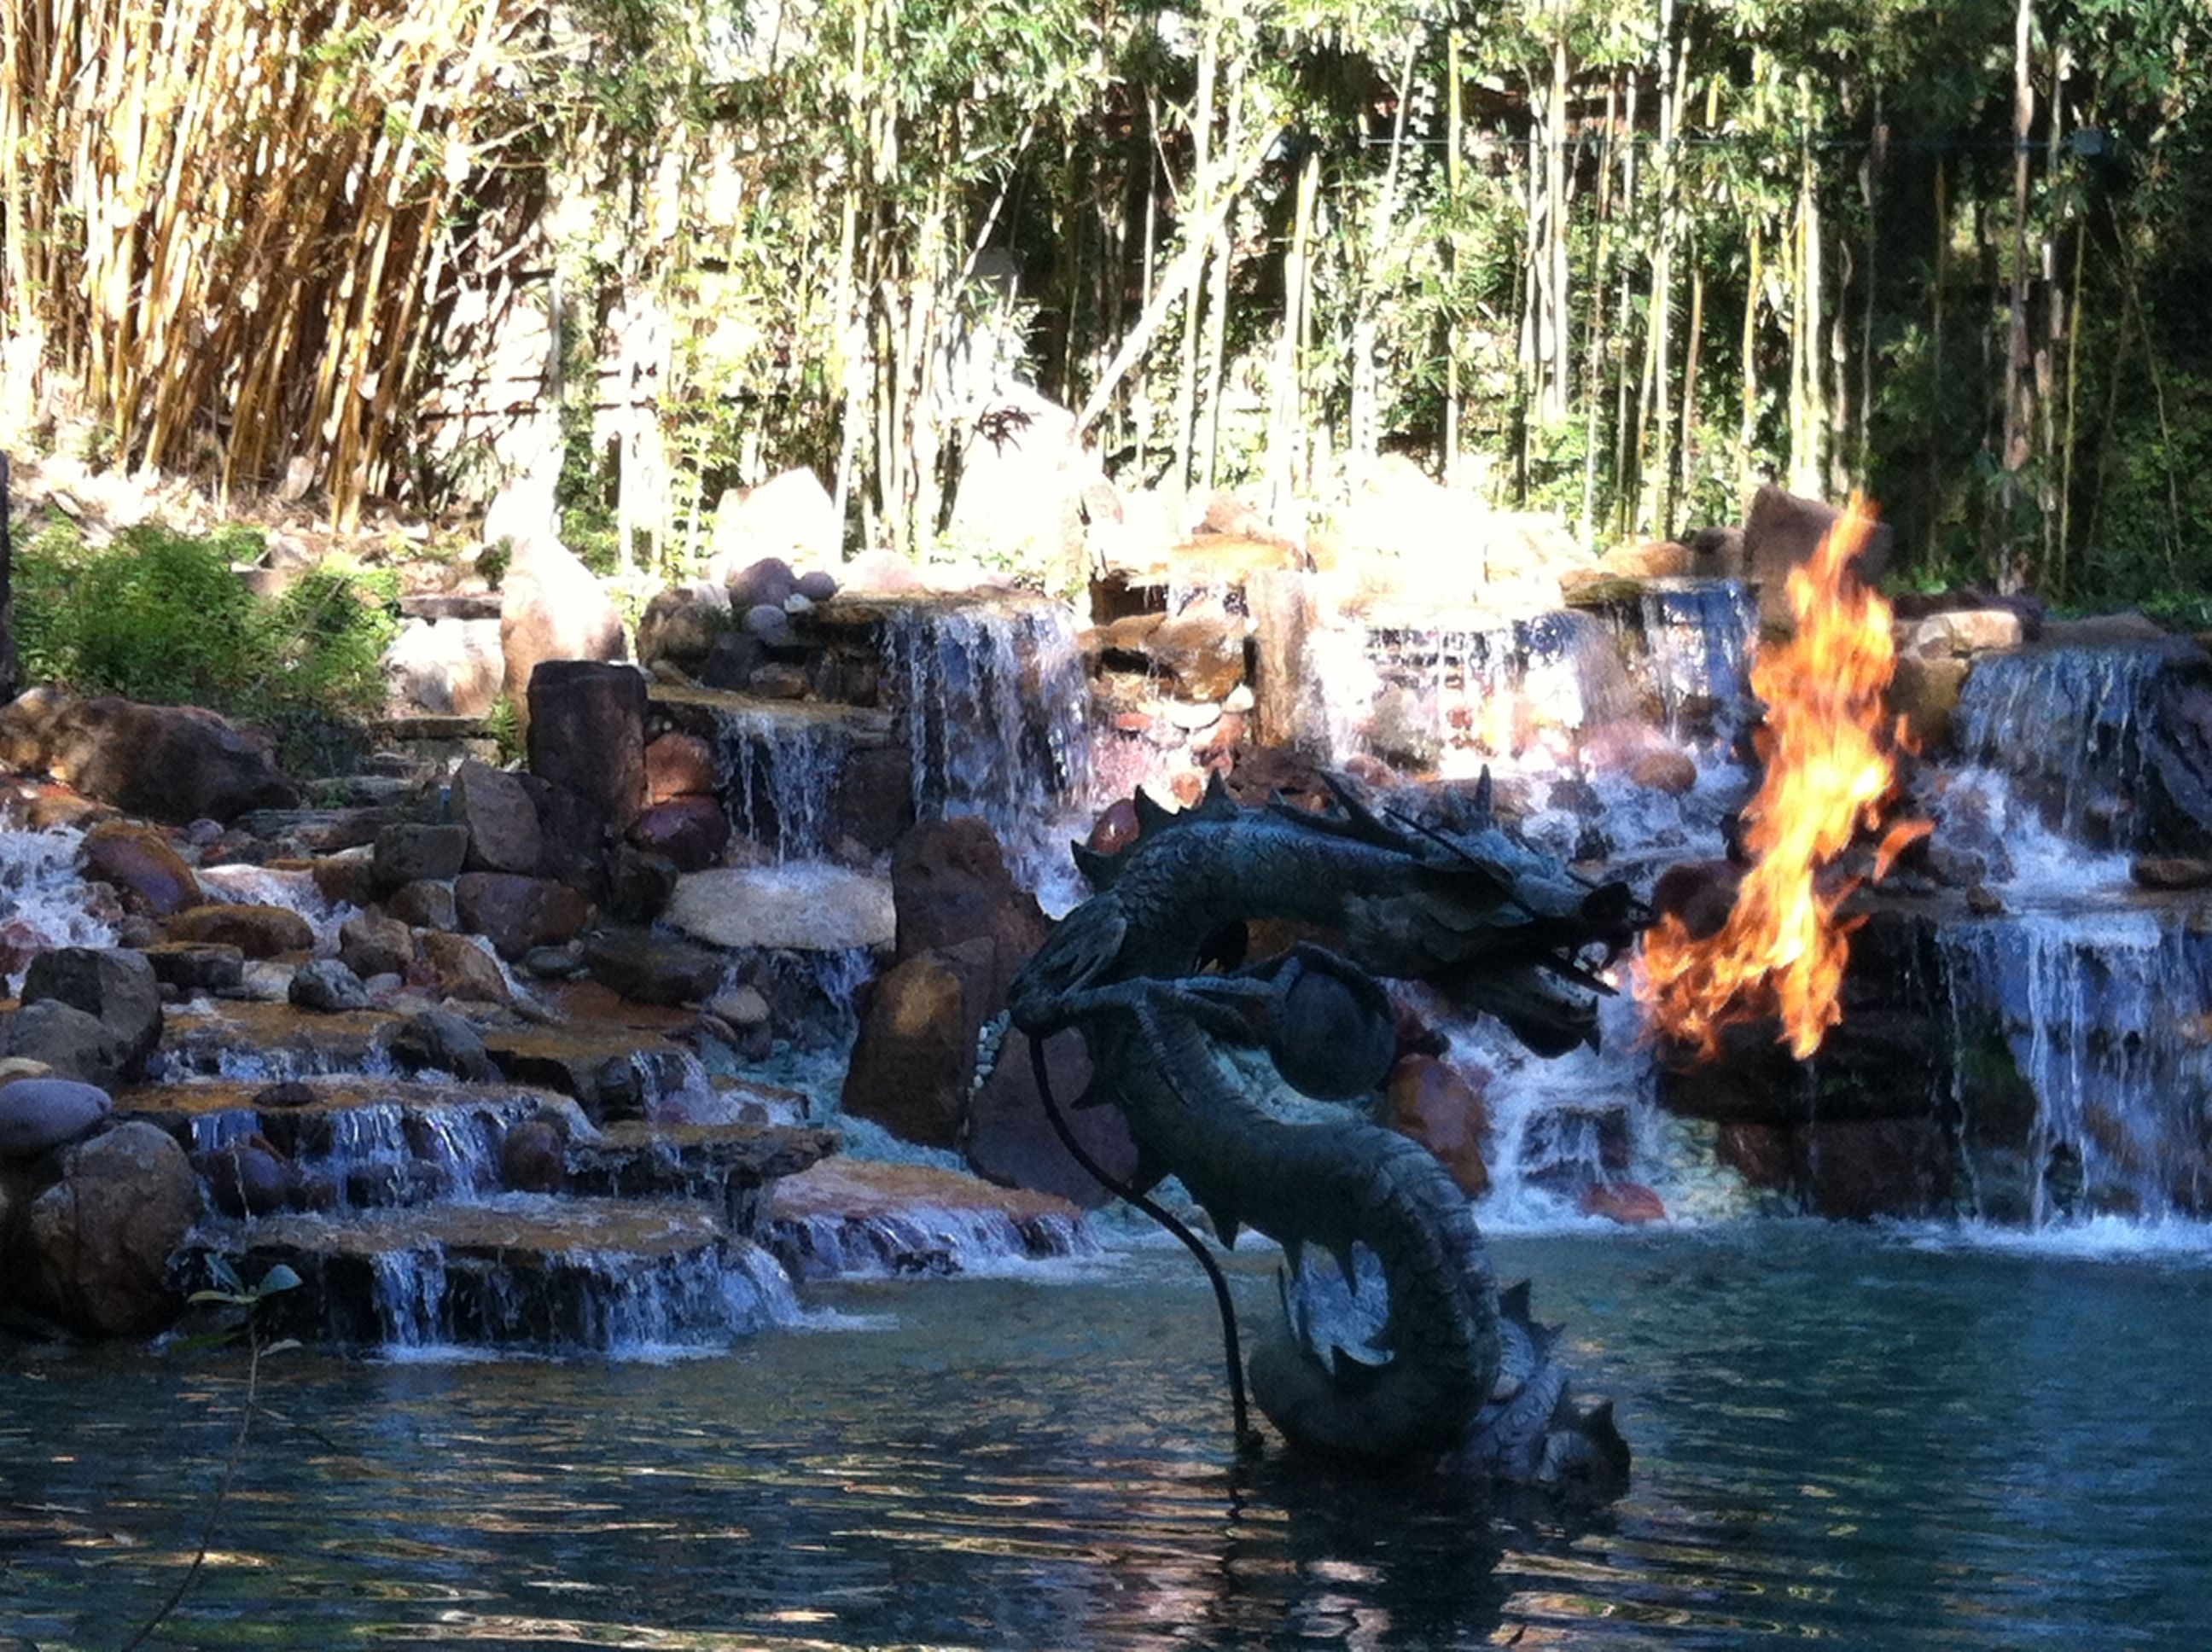 Fire breathing dragon with bamboo in the background.